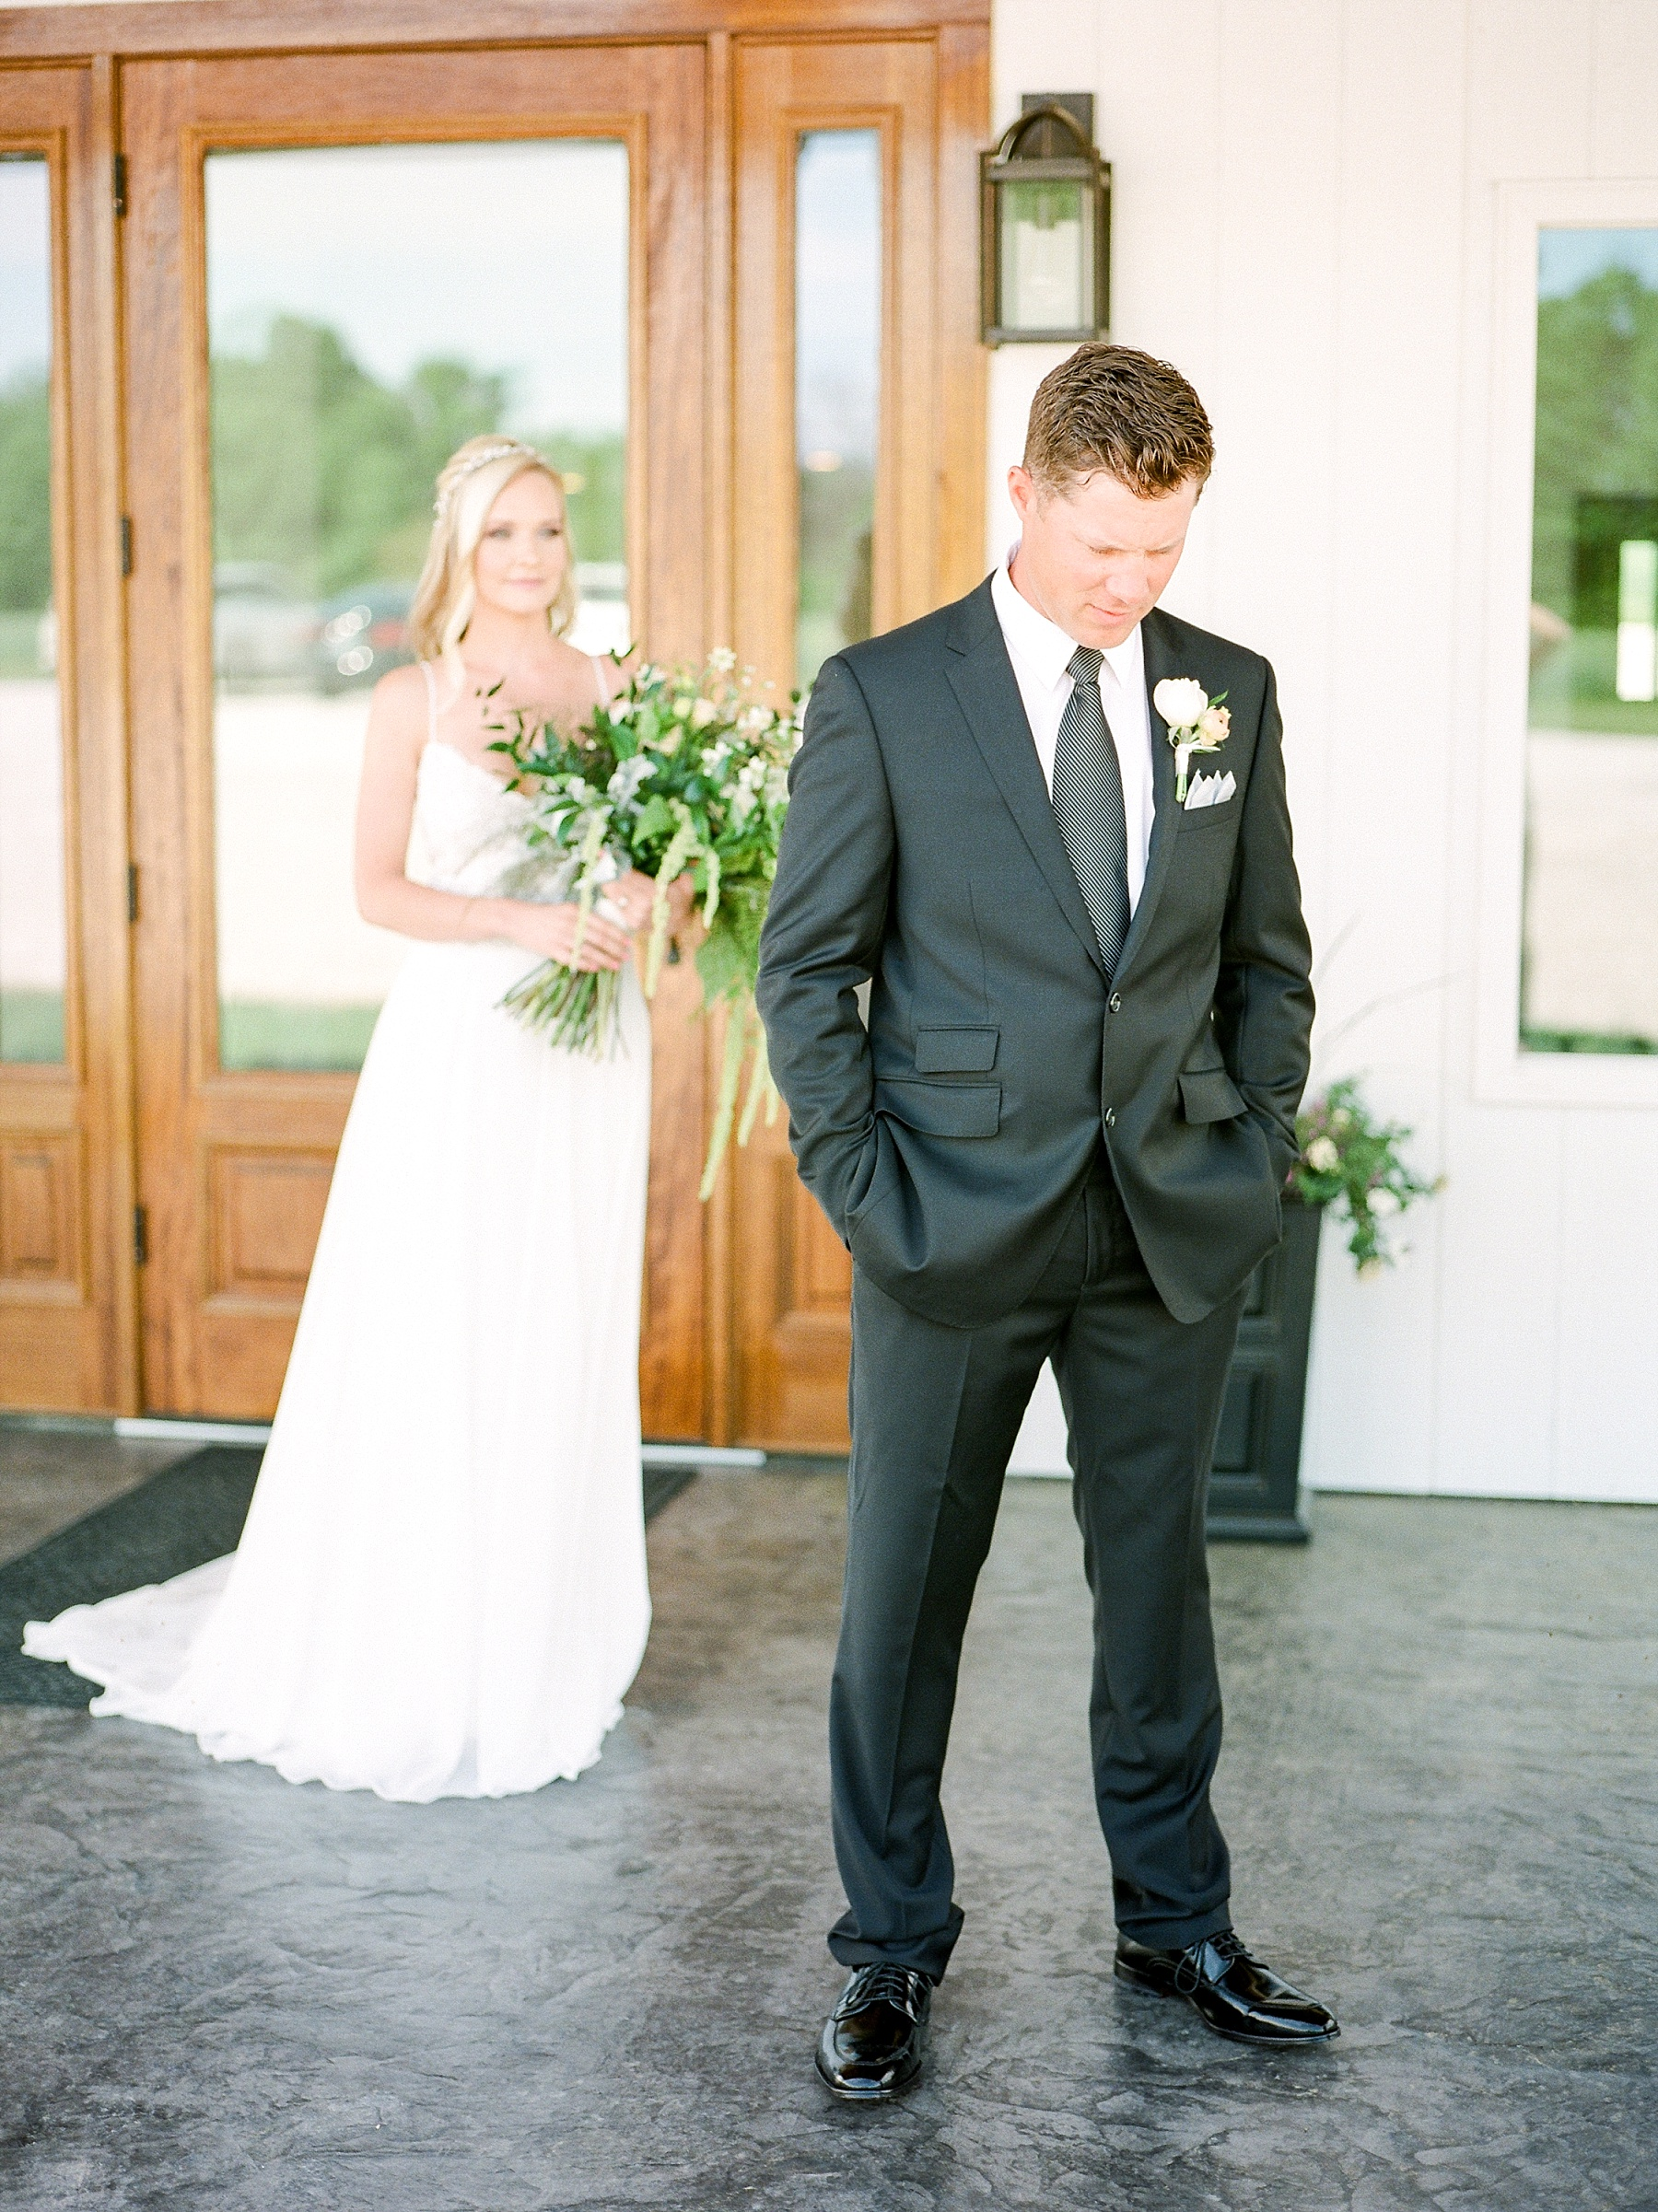 Textural Organic Wedding in All White Venue by Kelsi Kliethermes Wedding Photographer - Missouri, Midwest, and Destinations_0051.jpg